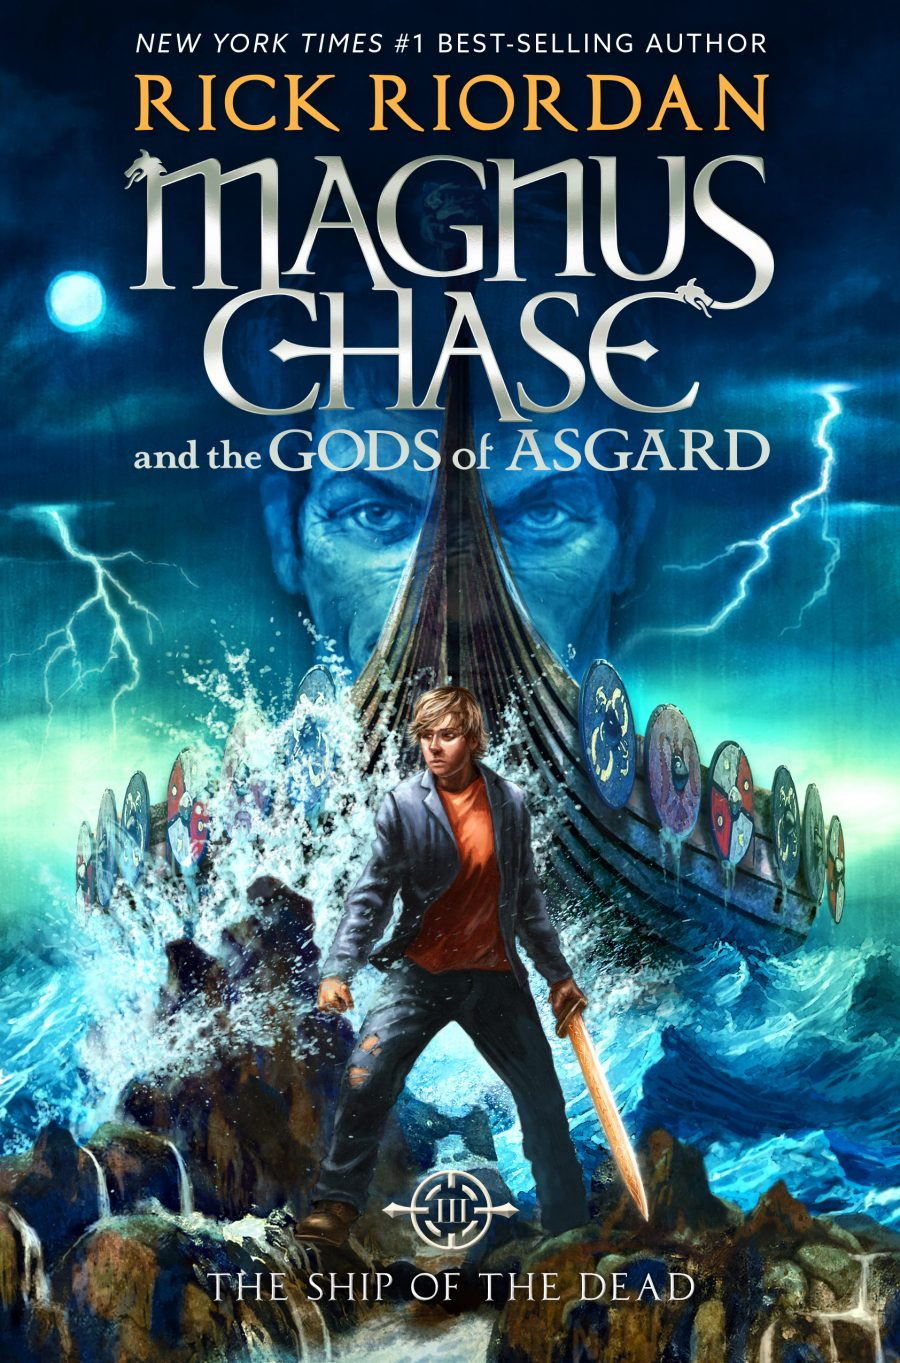 Exclusive Interview with Rick Riordan {Magnus Chase and the Gods of Asgard: The Ship of the Dead}